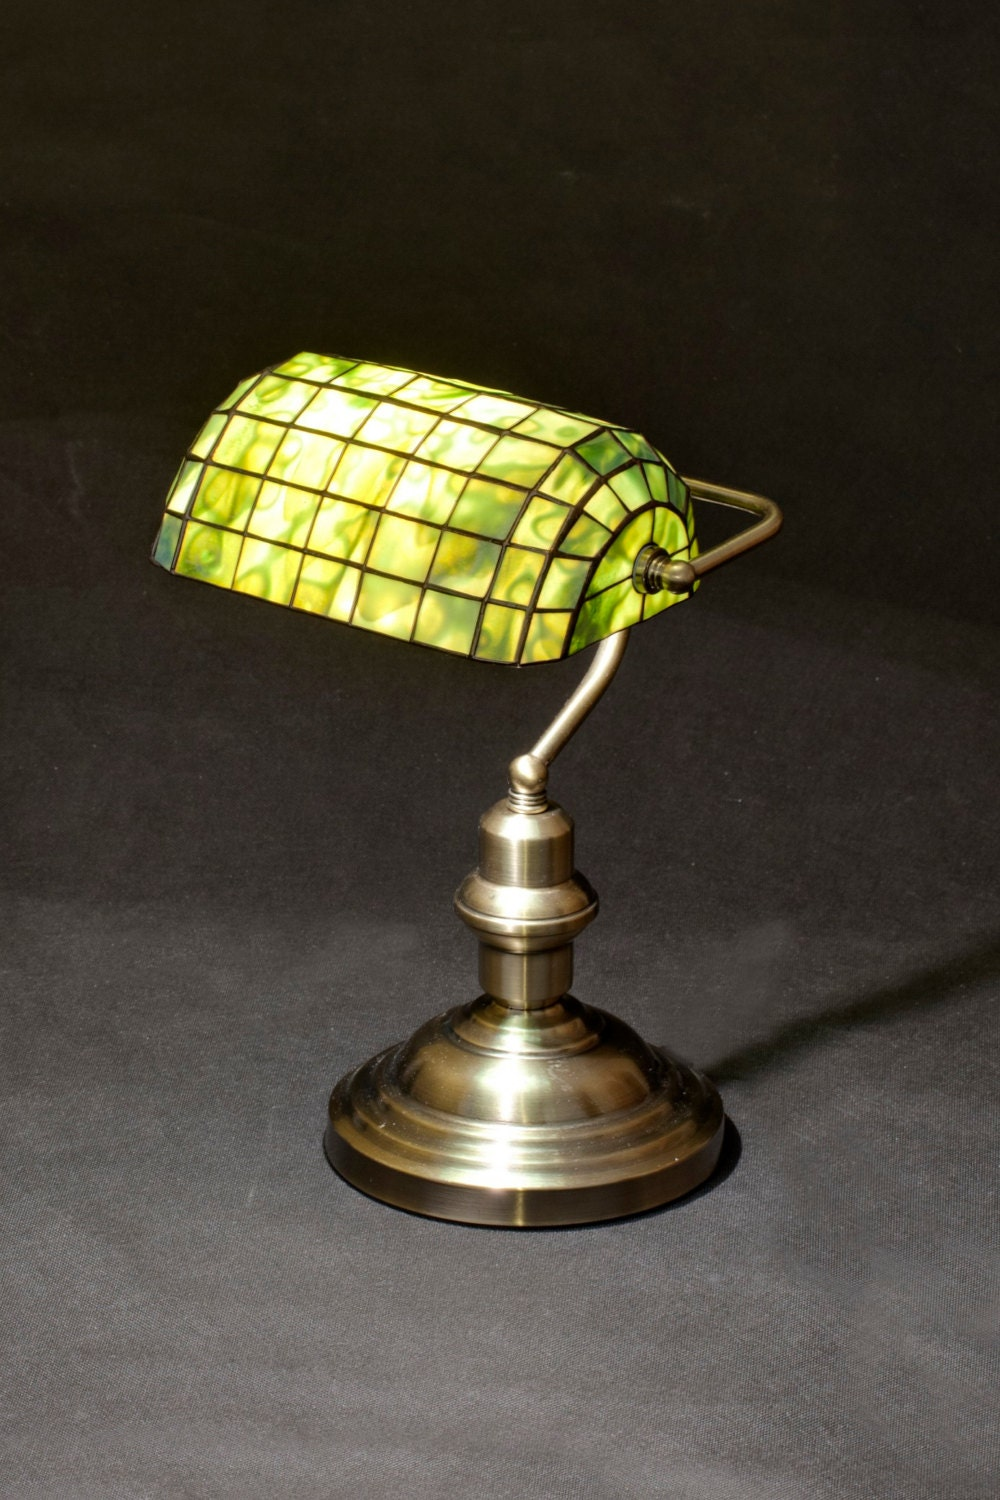 Bankers Lamp Library Lamp Brass Lamp Stained Glass Lamp for Bankers Lamp Library  585ifm